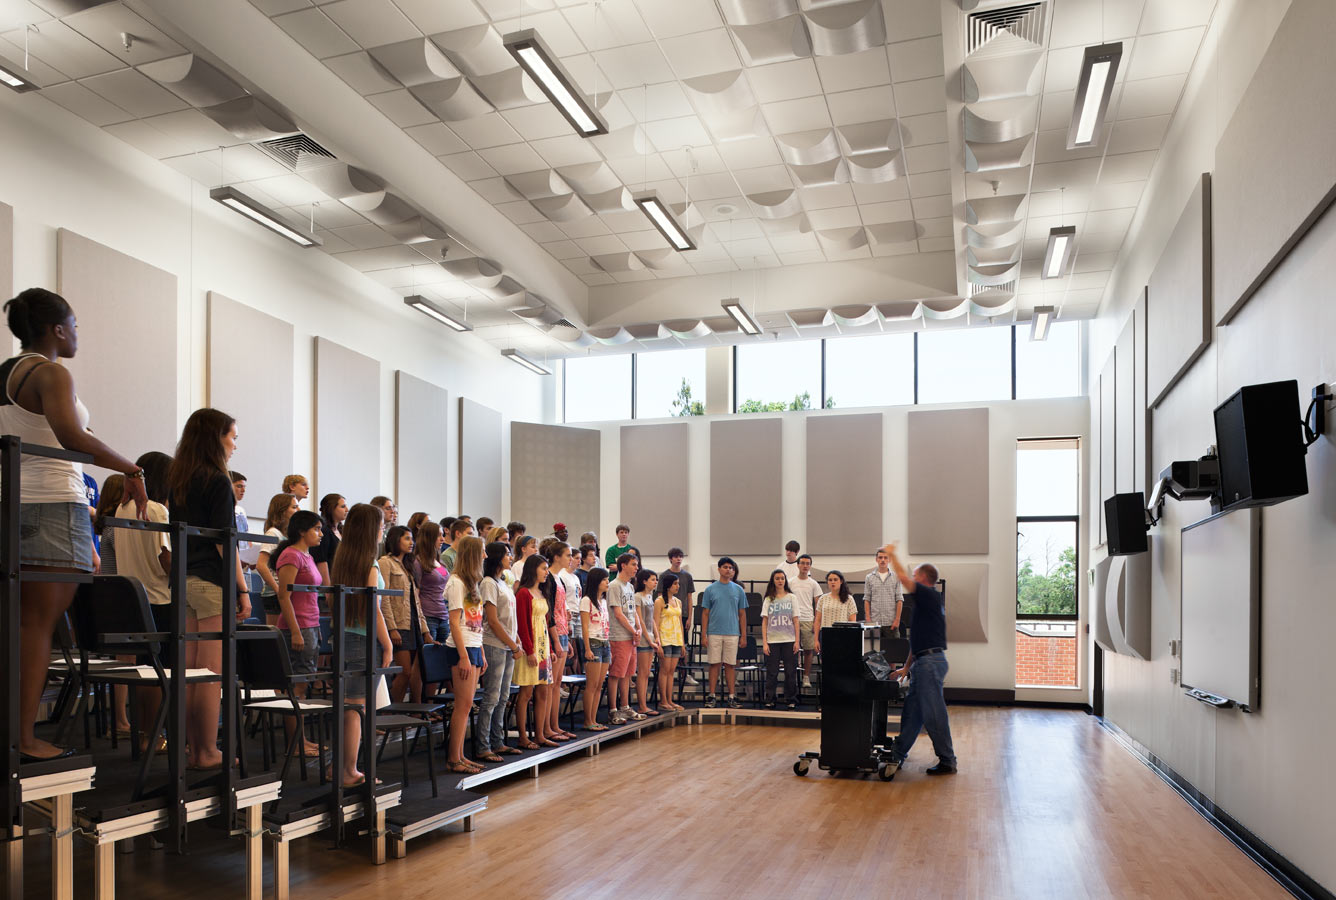 <p>On the same level as the Meeting Room, the choral practice room makes use of carefully specified acoustic features and sound-proofing. <br><small>© Michael Moran/OTTO</small> </p>